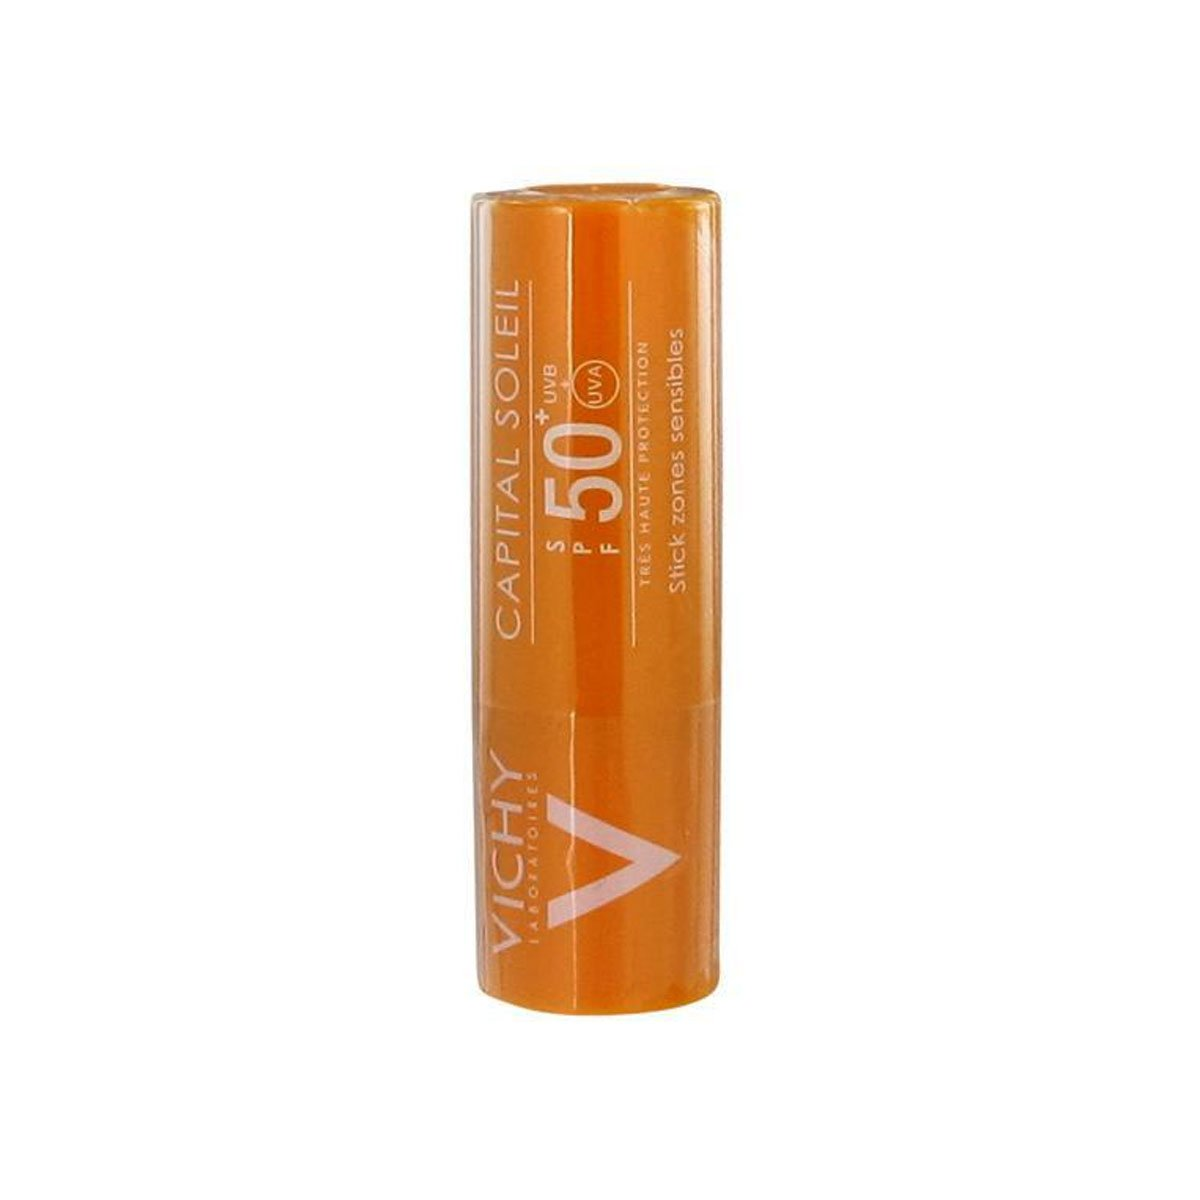 Vichy Capital Soleil Ideal Soleil Very High Protection Stick Sensitive Zones Spf50+ 9gr